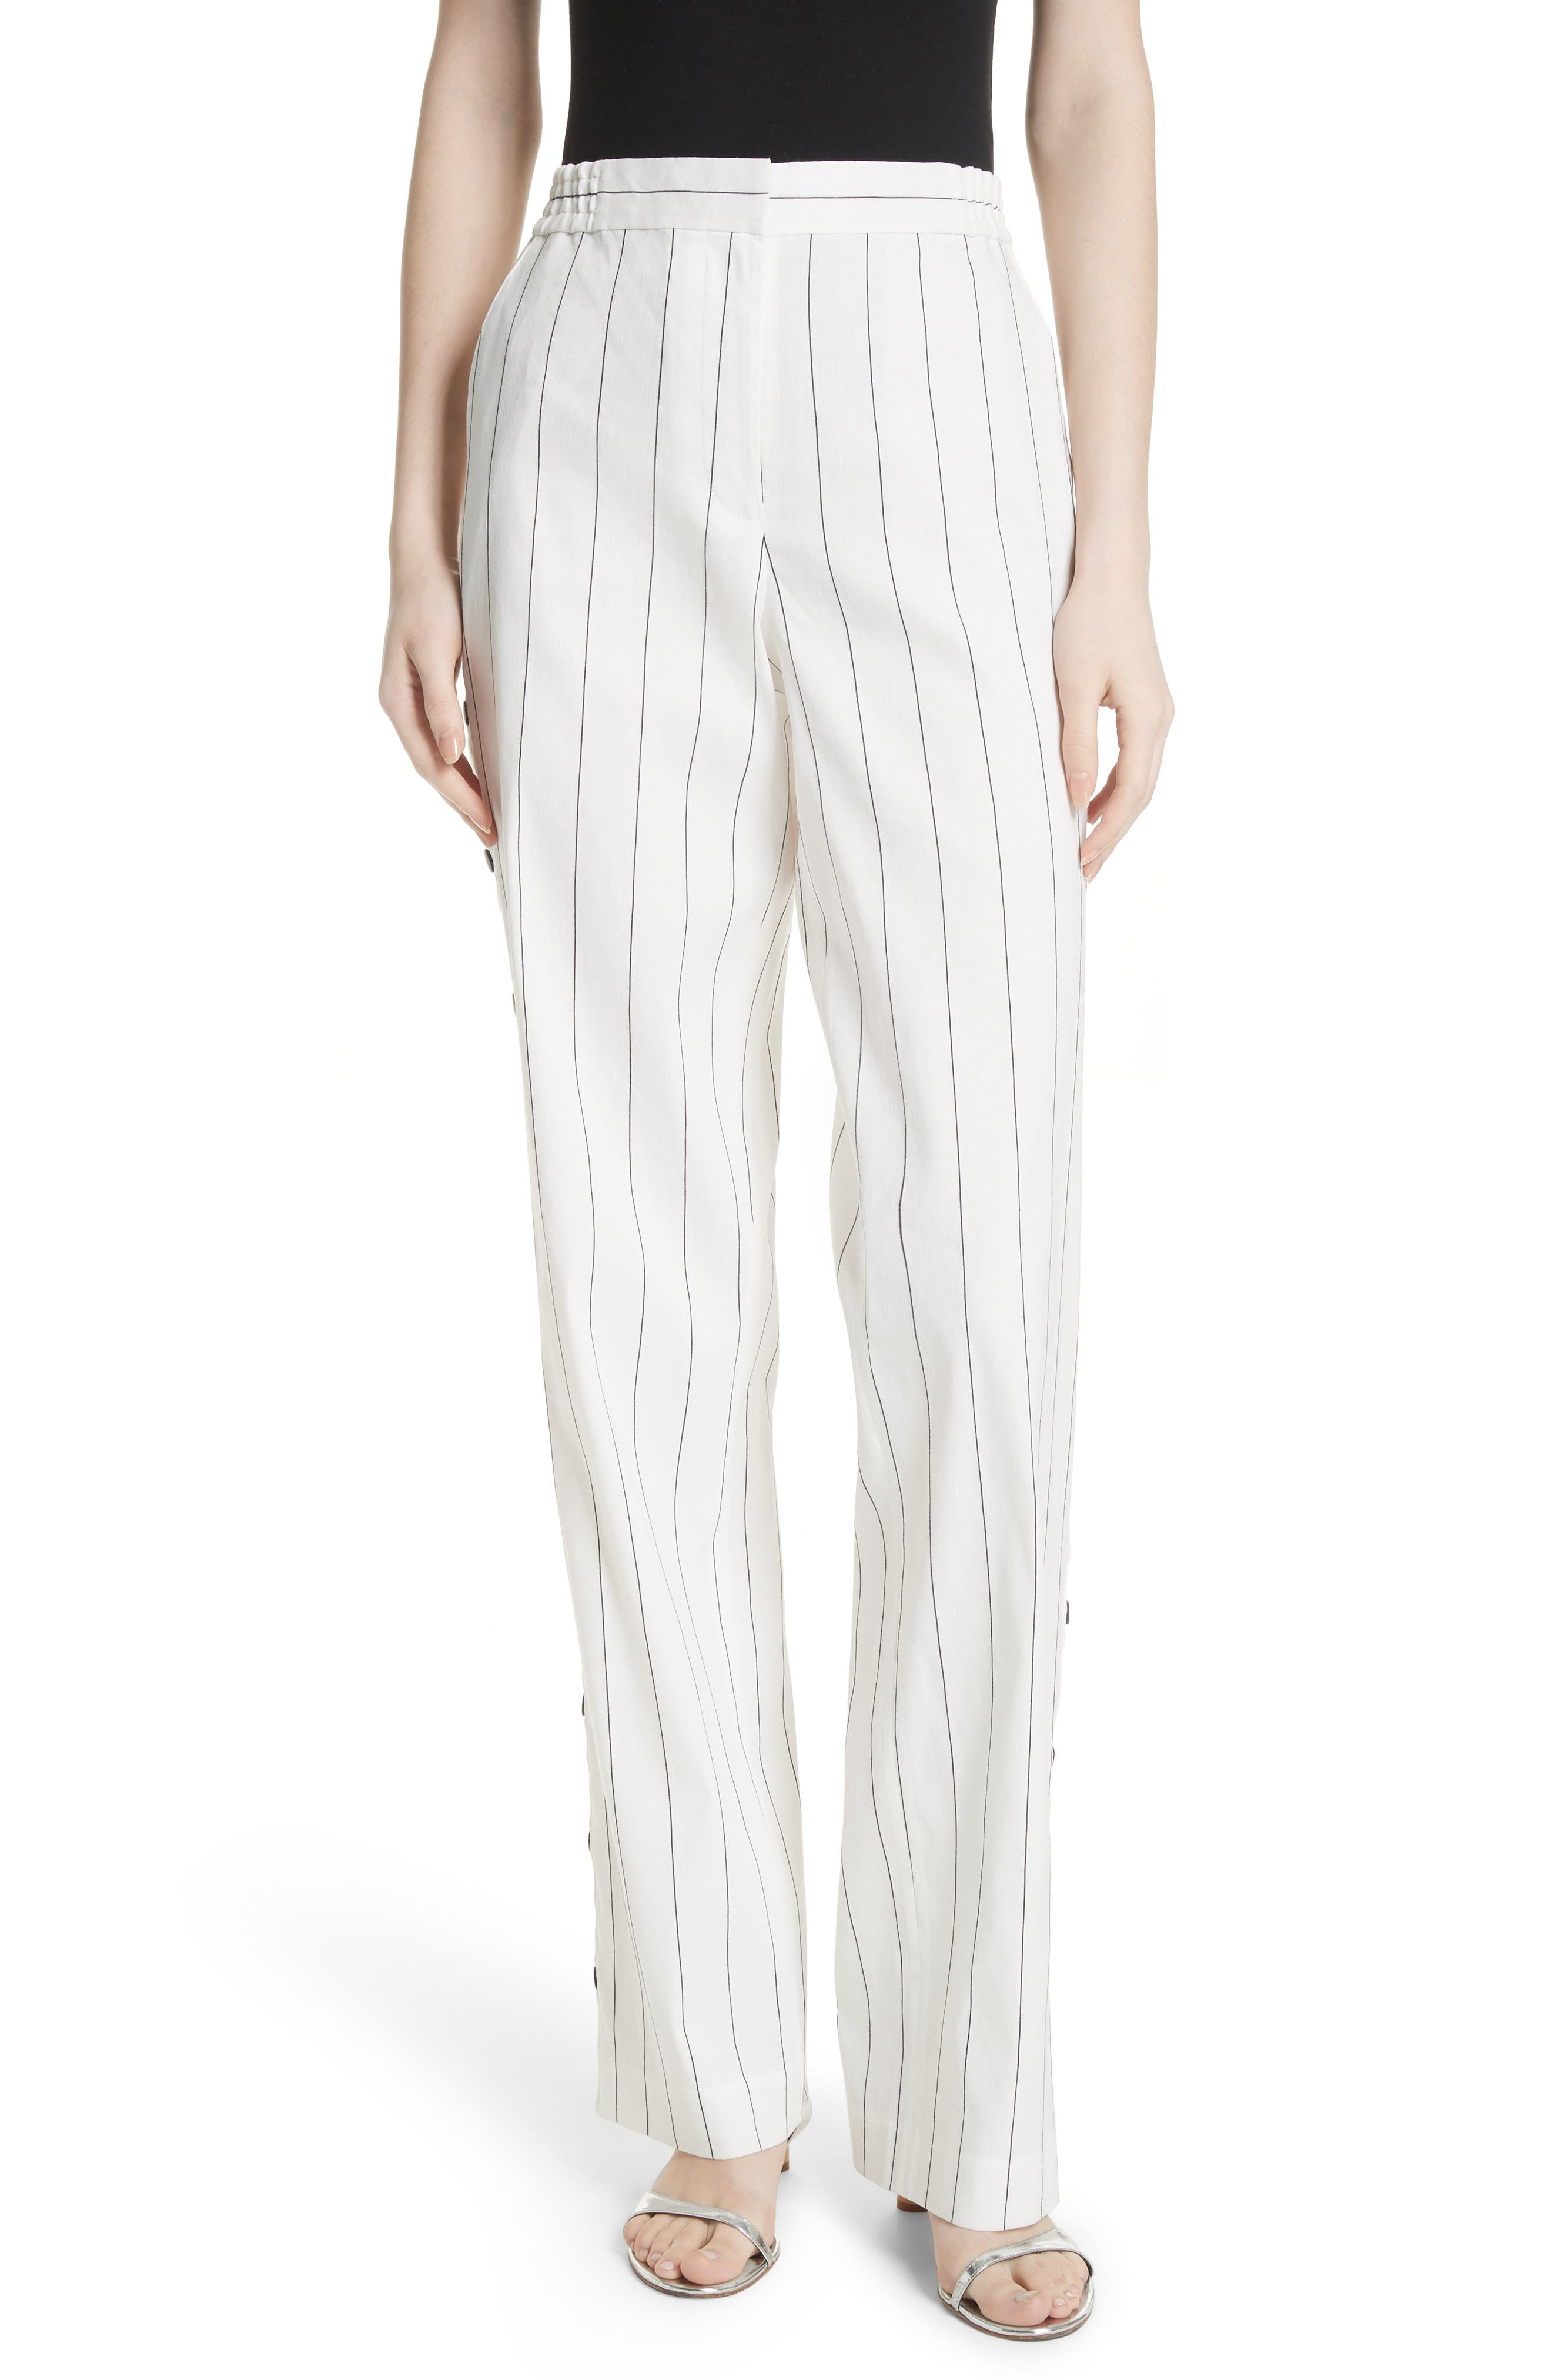 Snap Side Stripe Pants,                             Main thumbnail 1, color,                             Ivory Multi